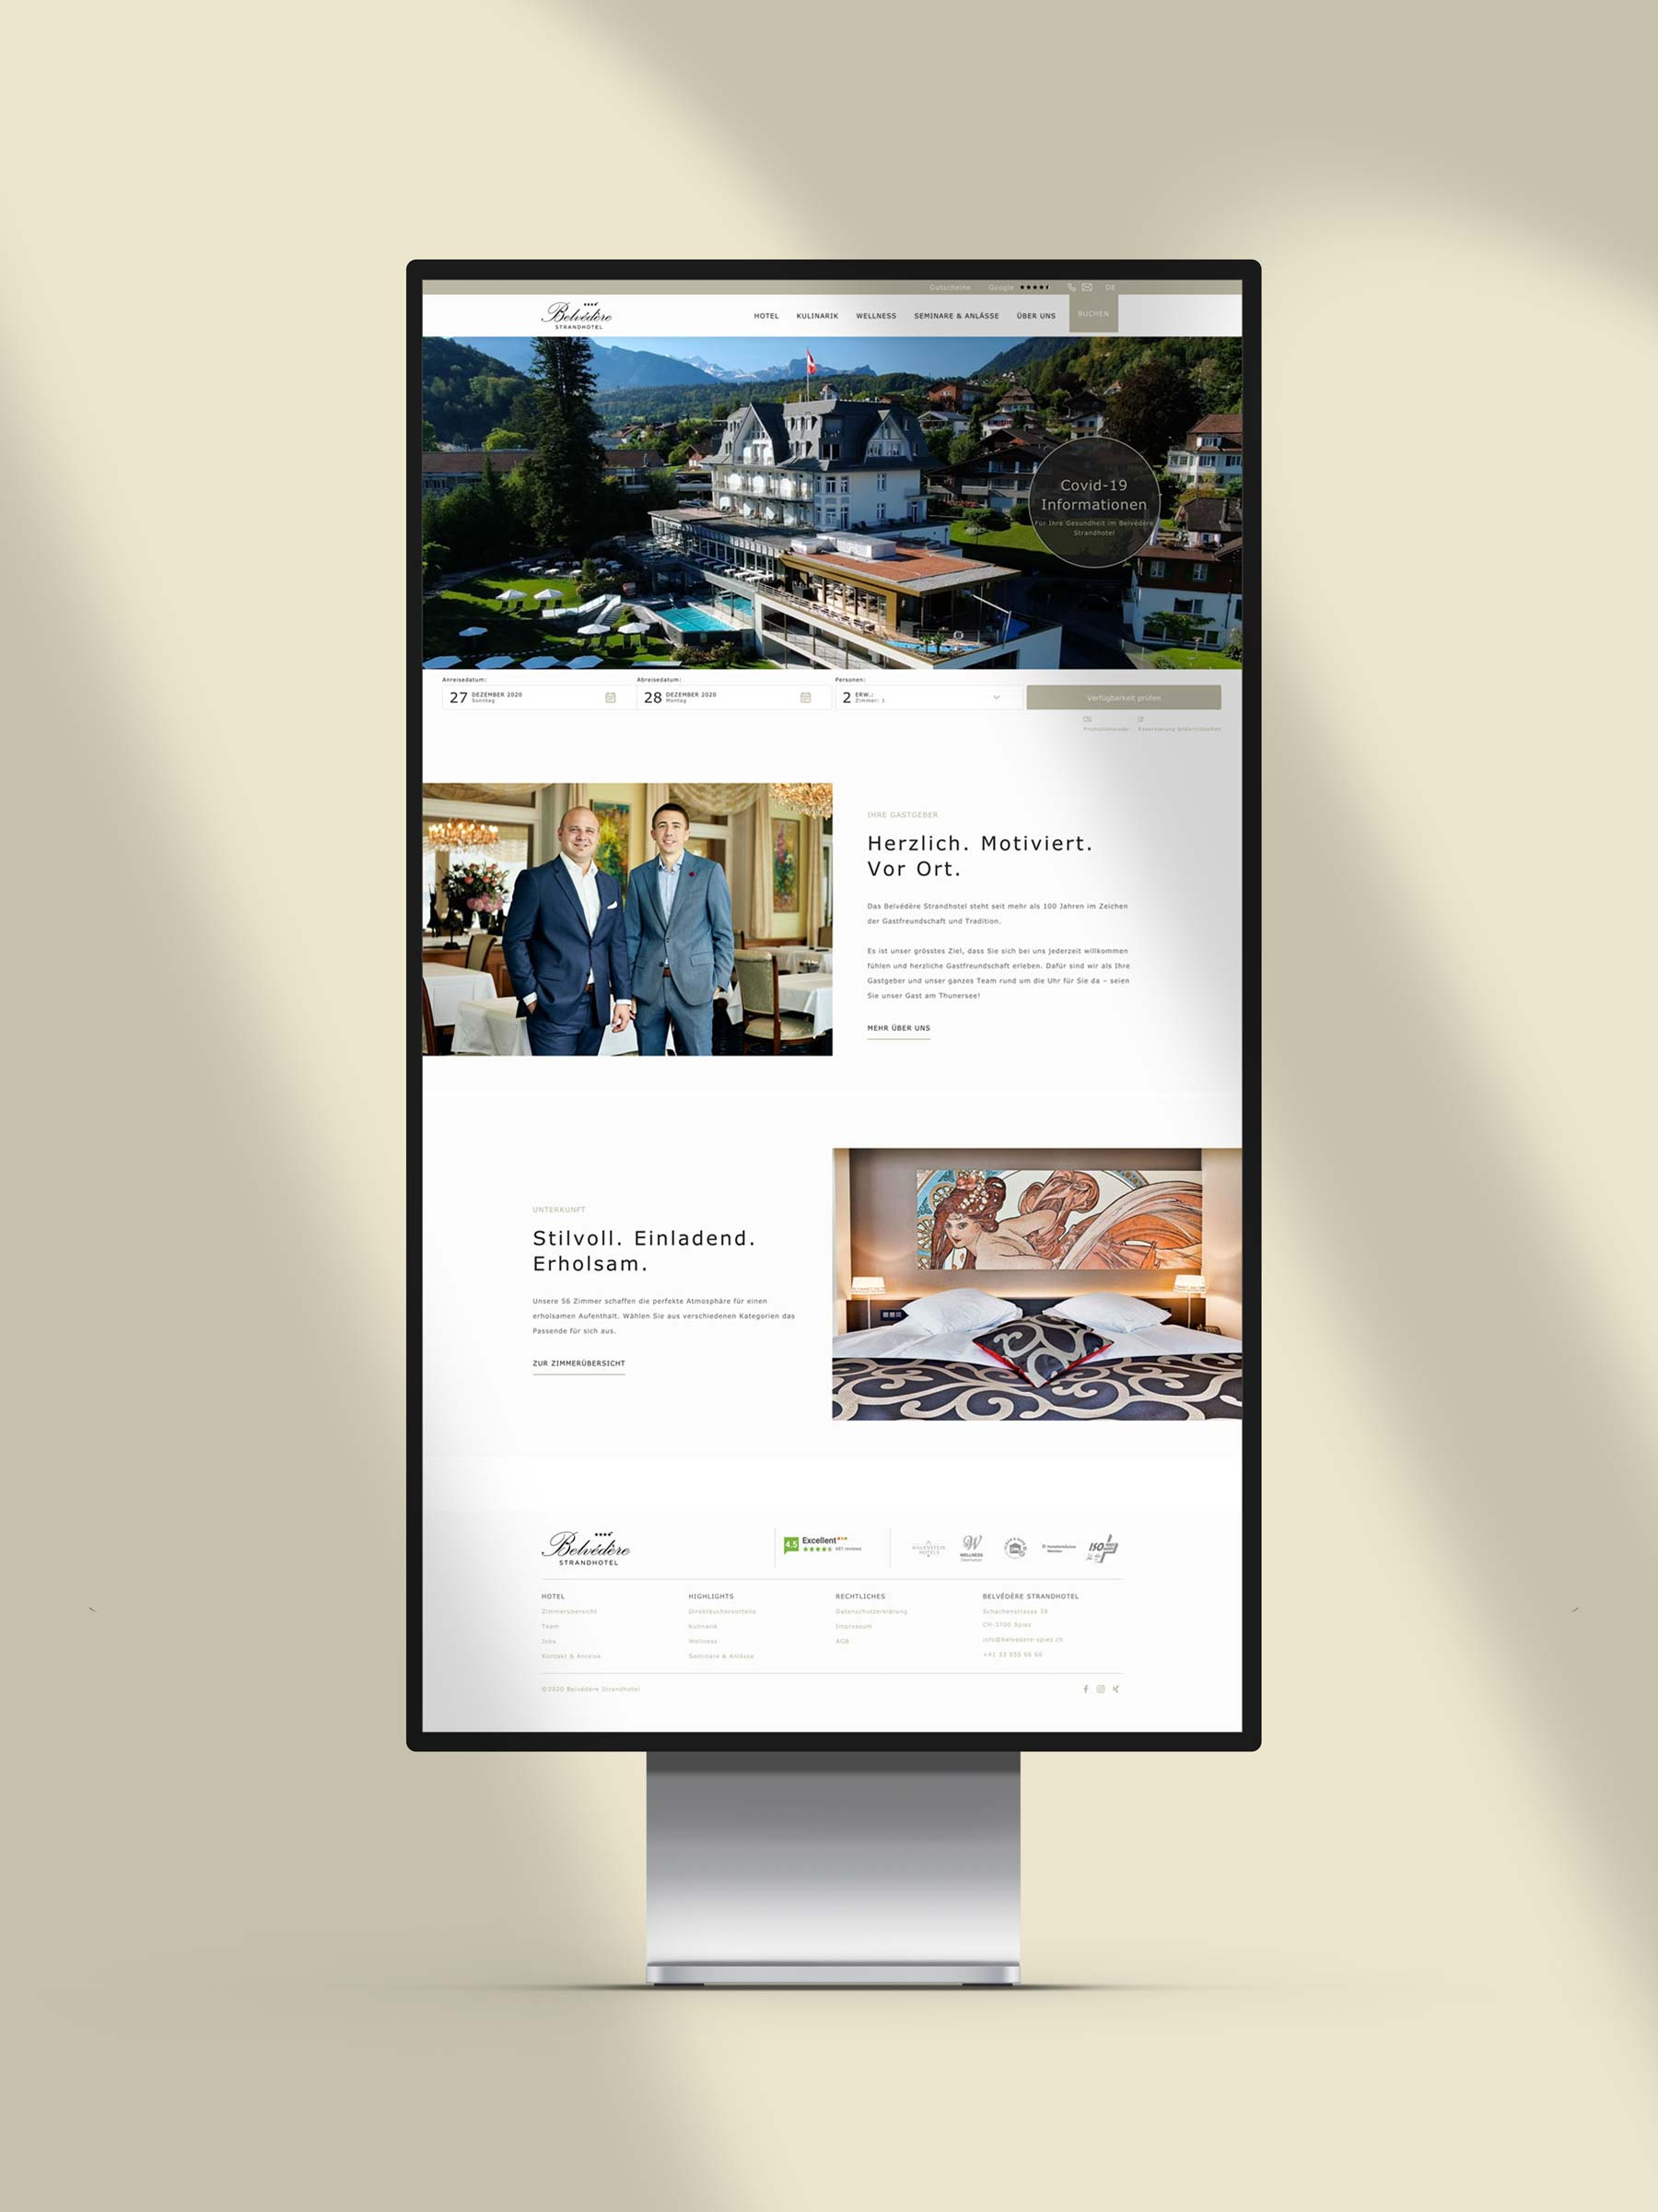 Design Landingpage - Website development for Hotel Switzerland